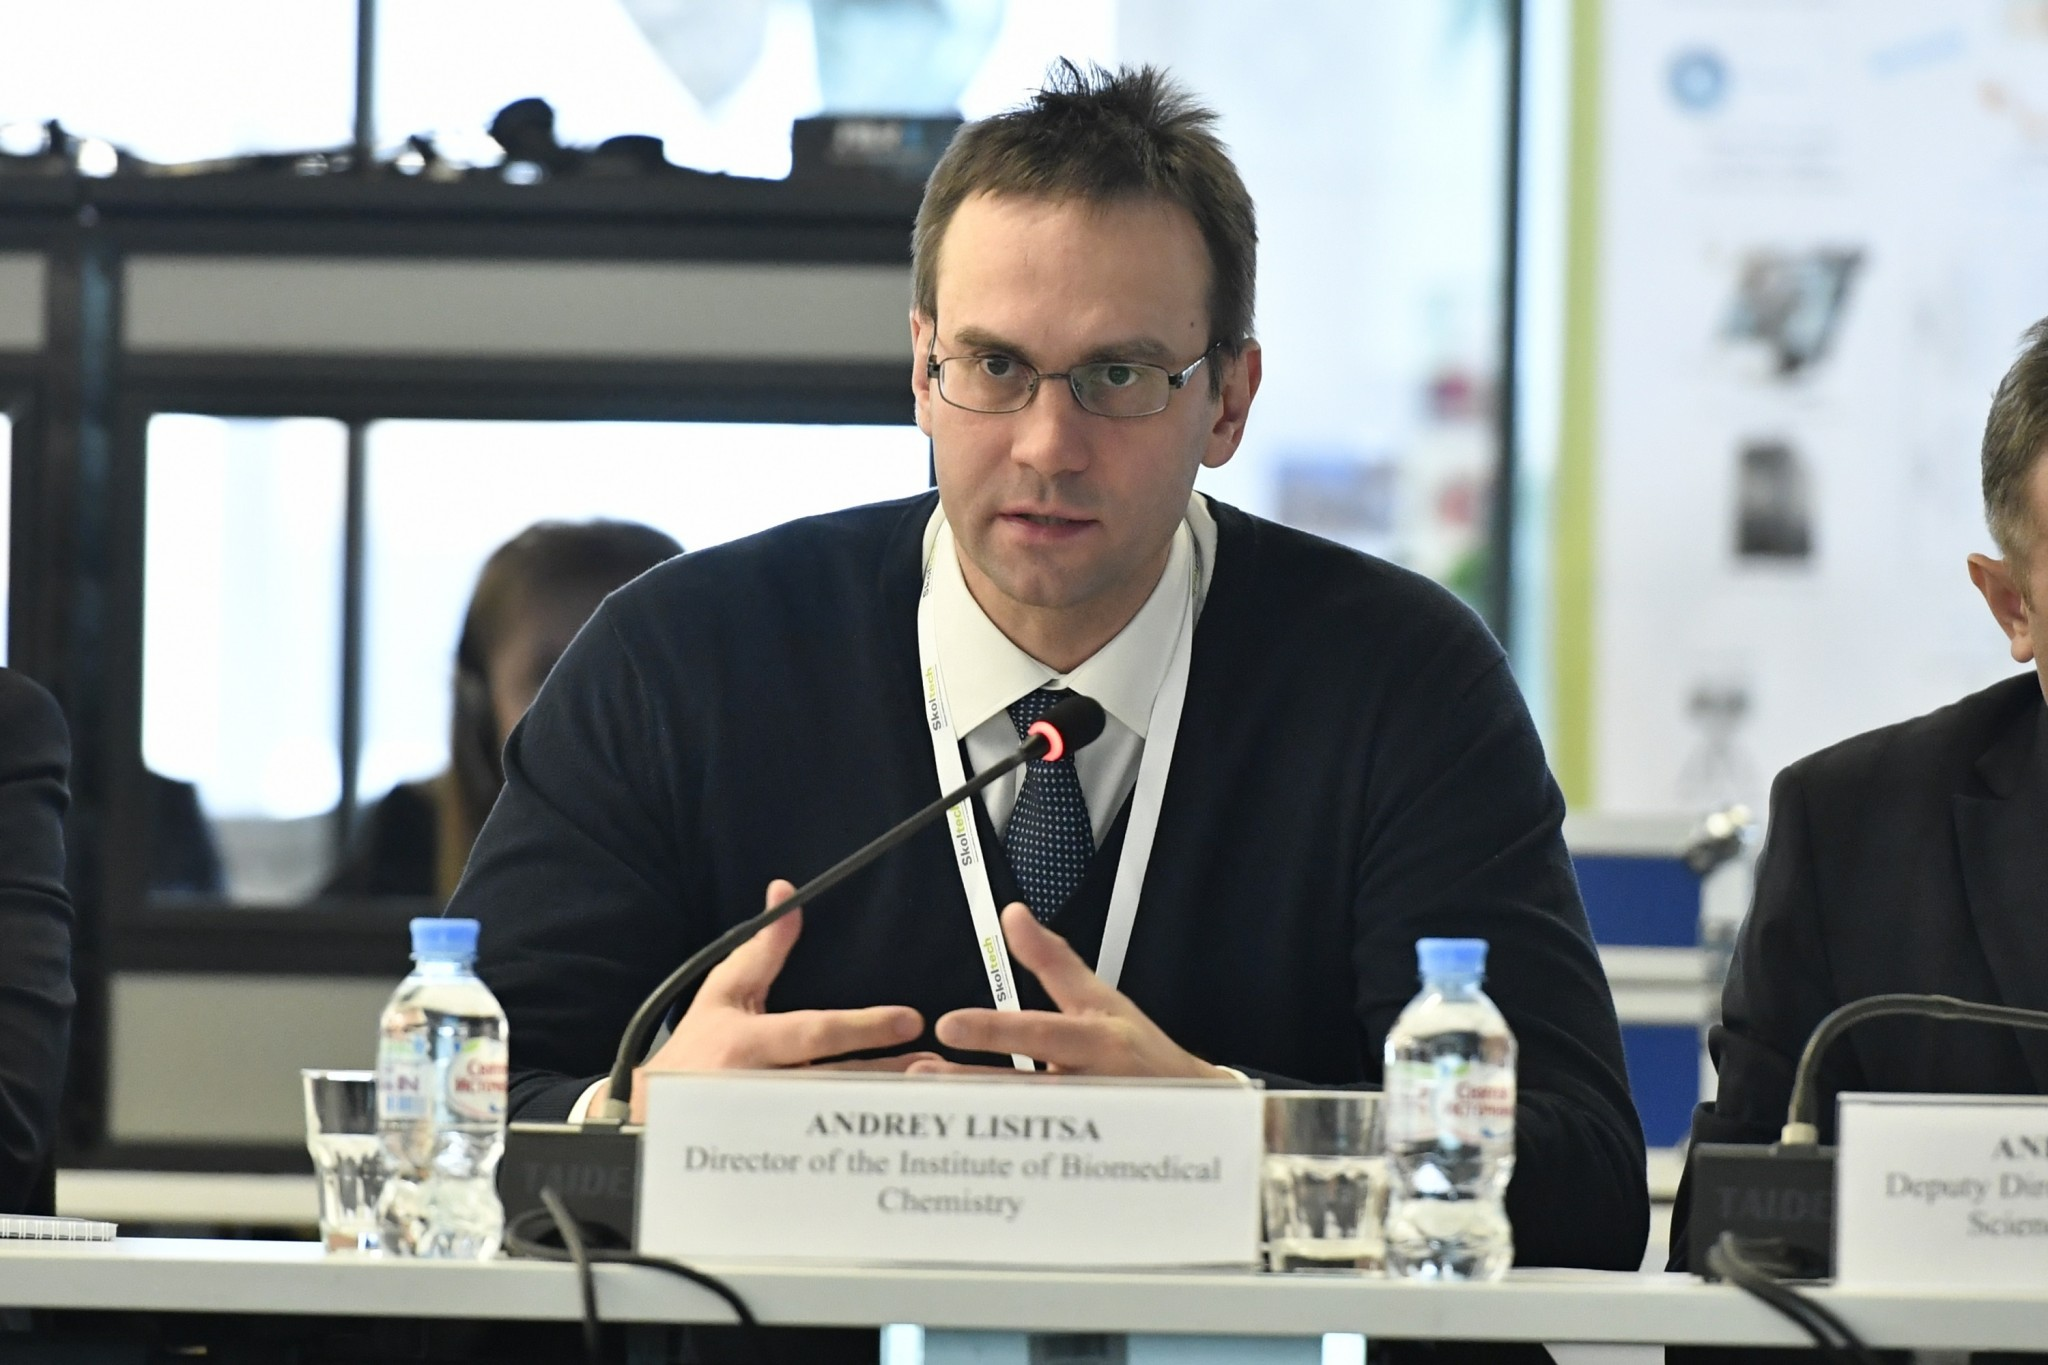 Dr. Andrey Lisitsa of the Russian delegation. Photo: Skoltech.